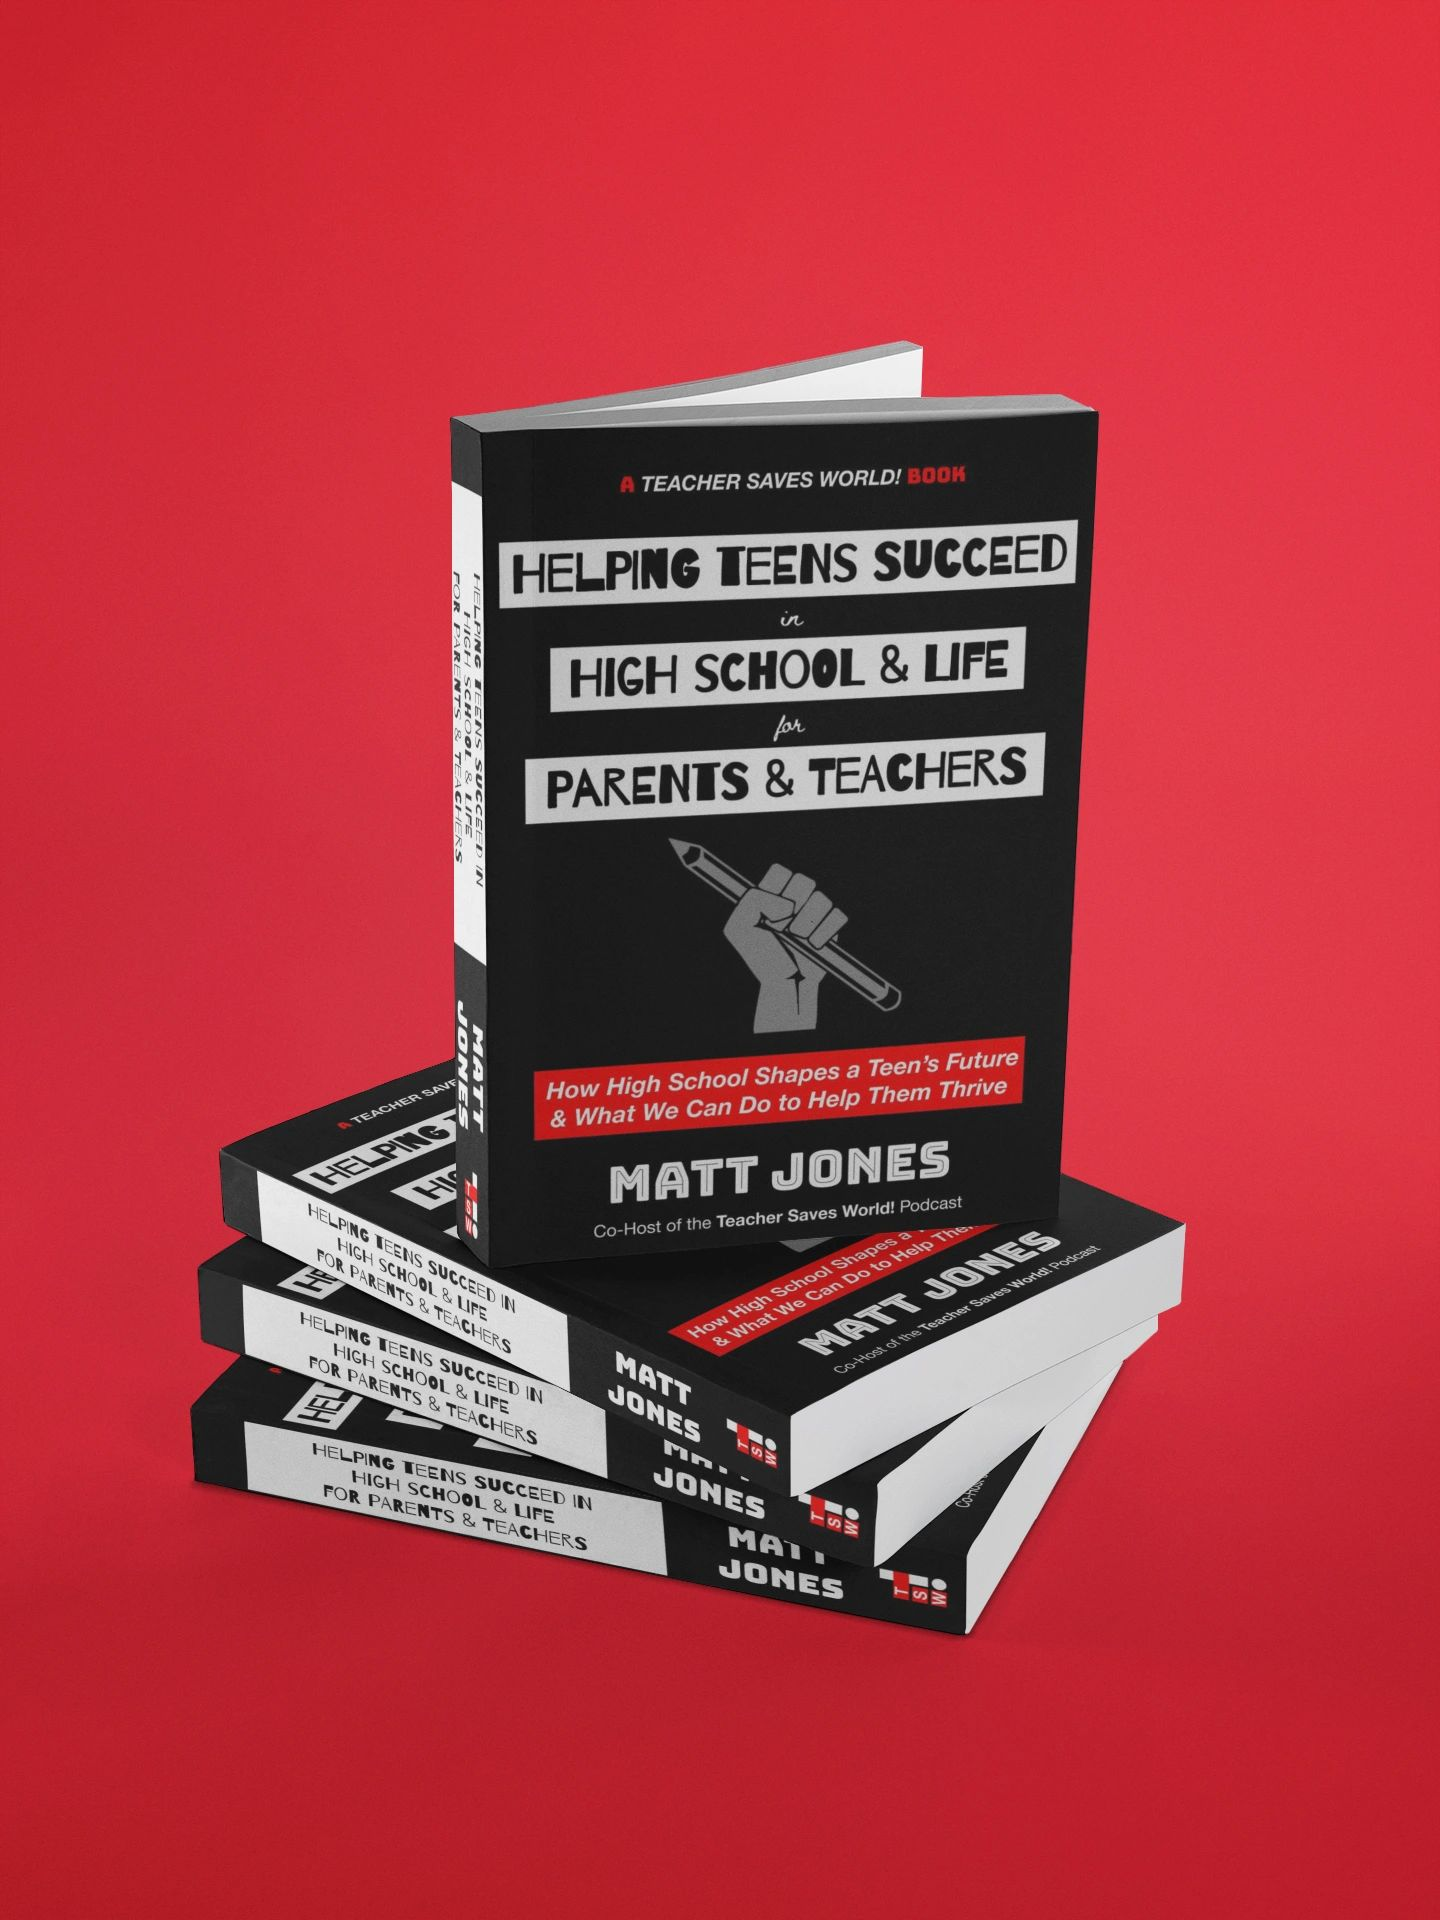 Helping Teens Succeed in High School & Life for Parents & Teachers by Matt Jones